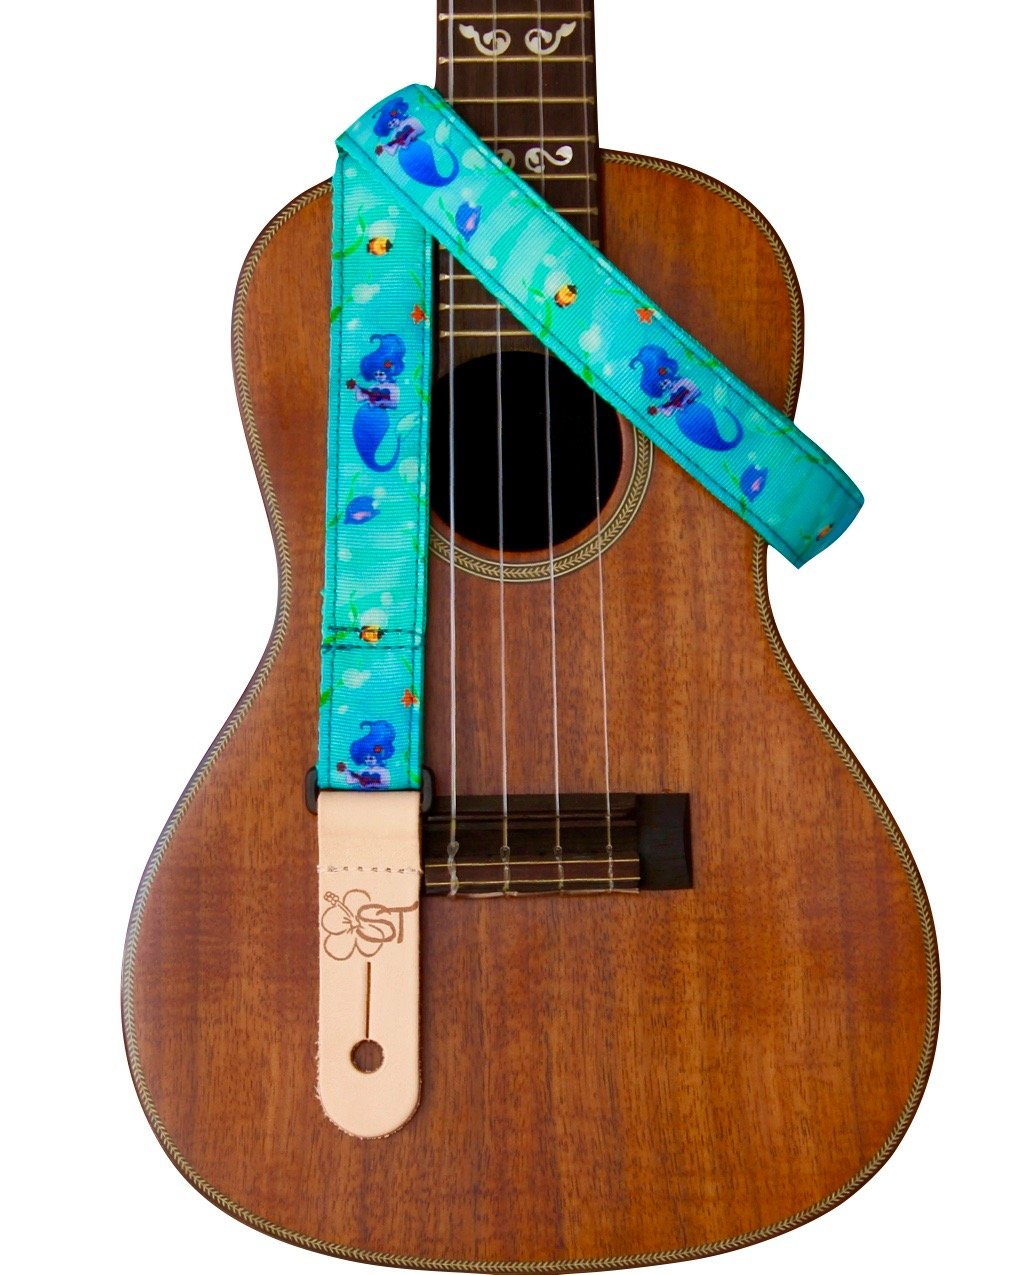 Sherrin's Threads 1 Ukulele Strap - Blue Mermaid